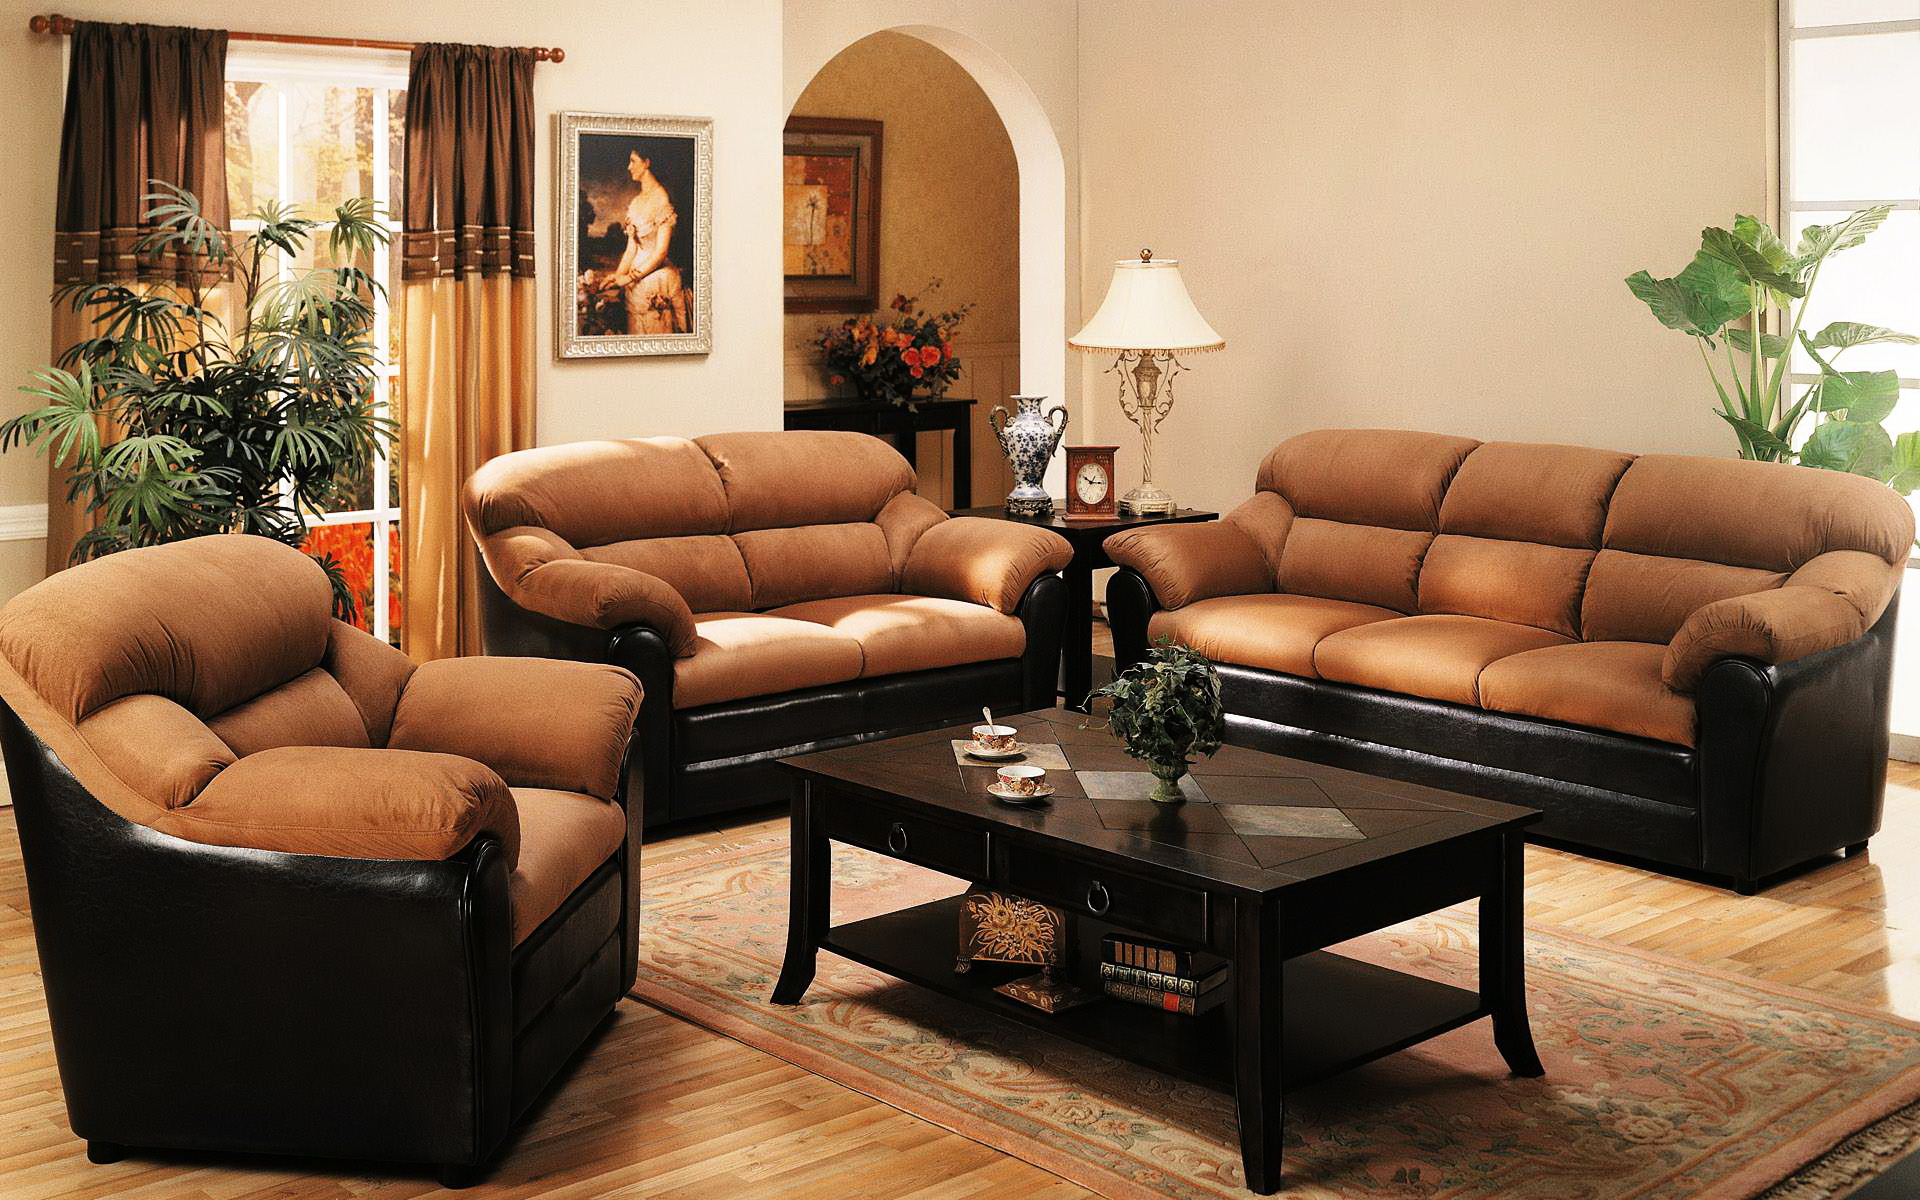 sofa and more sofaer co yangon menu home decor sofas furniture the fashionable housewife